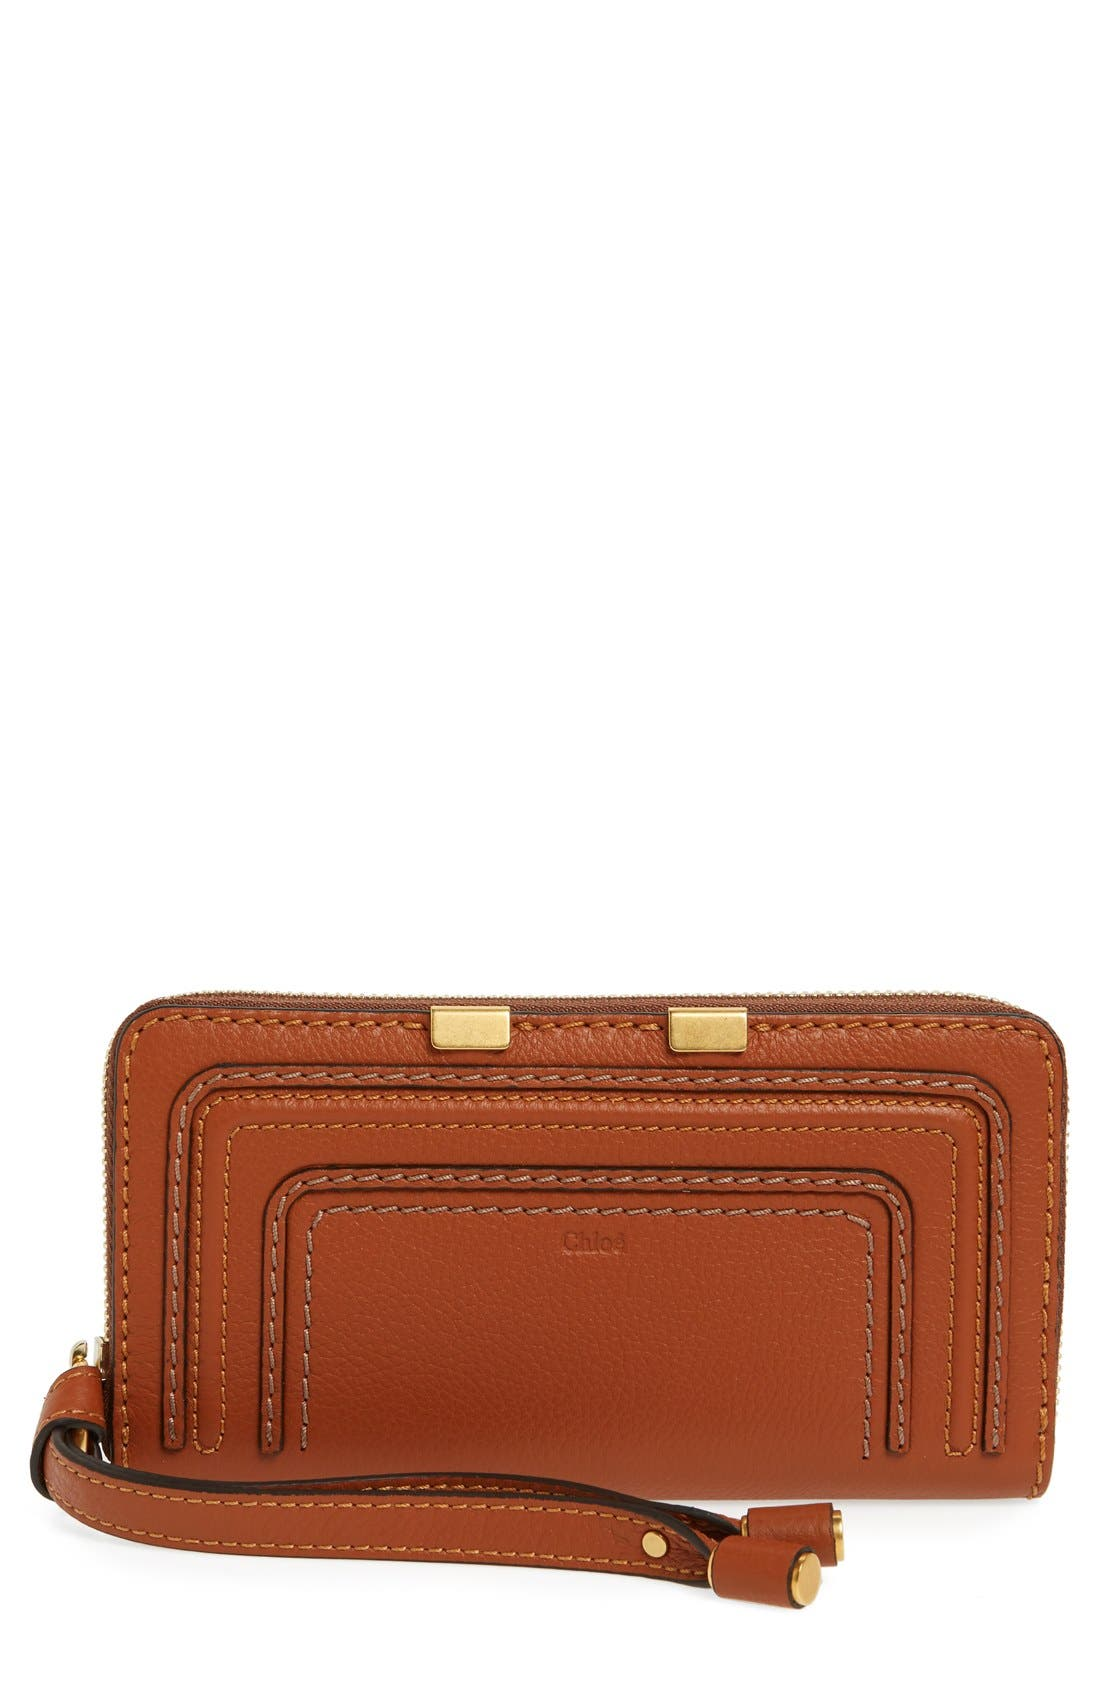 CHLOÉ 'Marcie' Leather Phone Wristlet